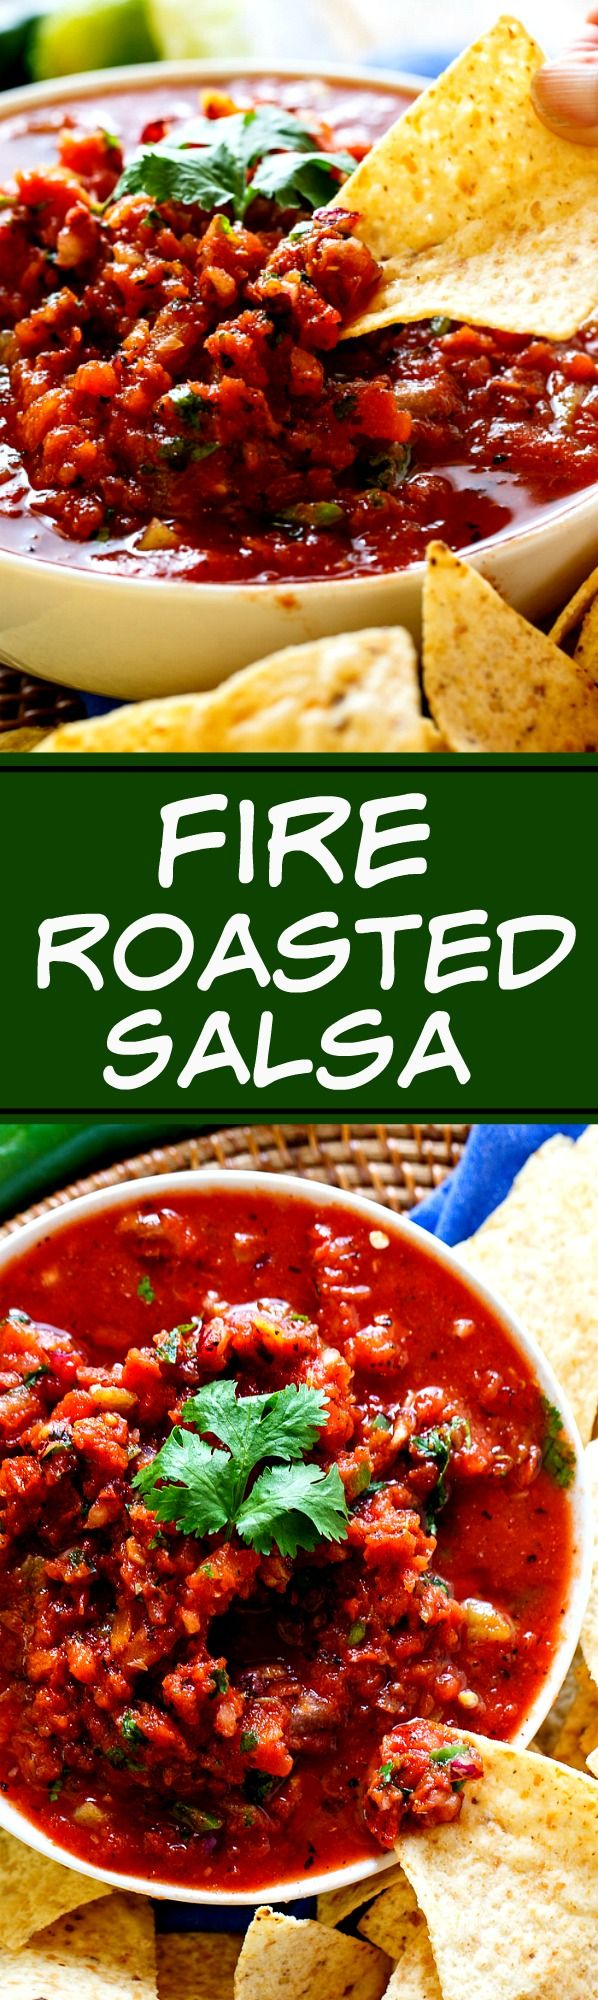 Fire-Roasted Salsa- make restaurant-style salsa in just minutes!